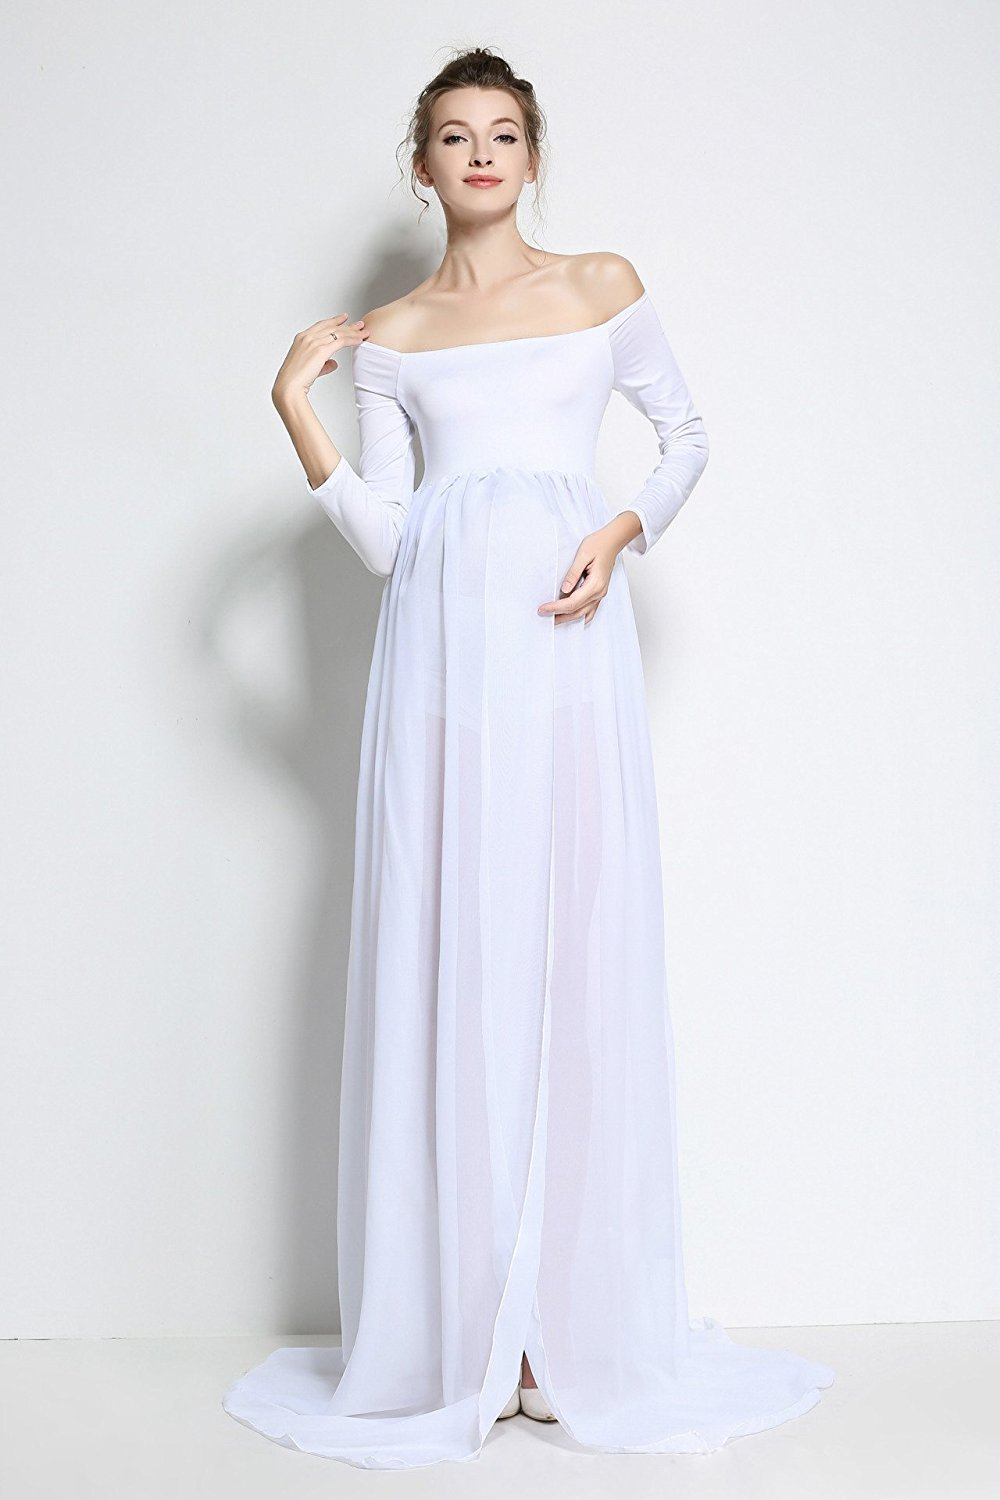 05b204a6b Get Quotations · Maternity Chiffon Gown Split Front Maxi White Photography  Dress for Pregnancy Photo Shoot